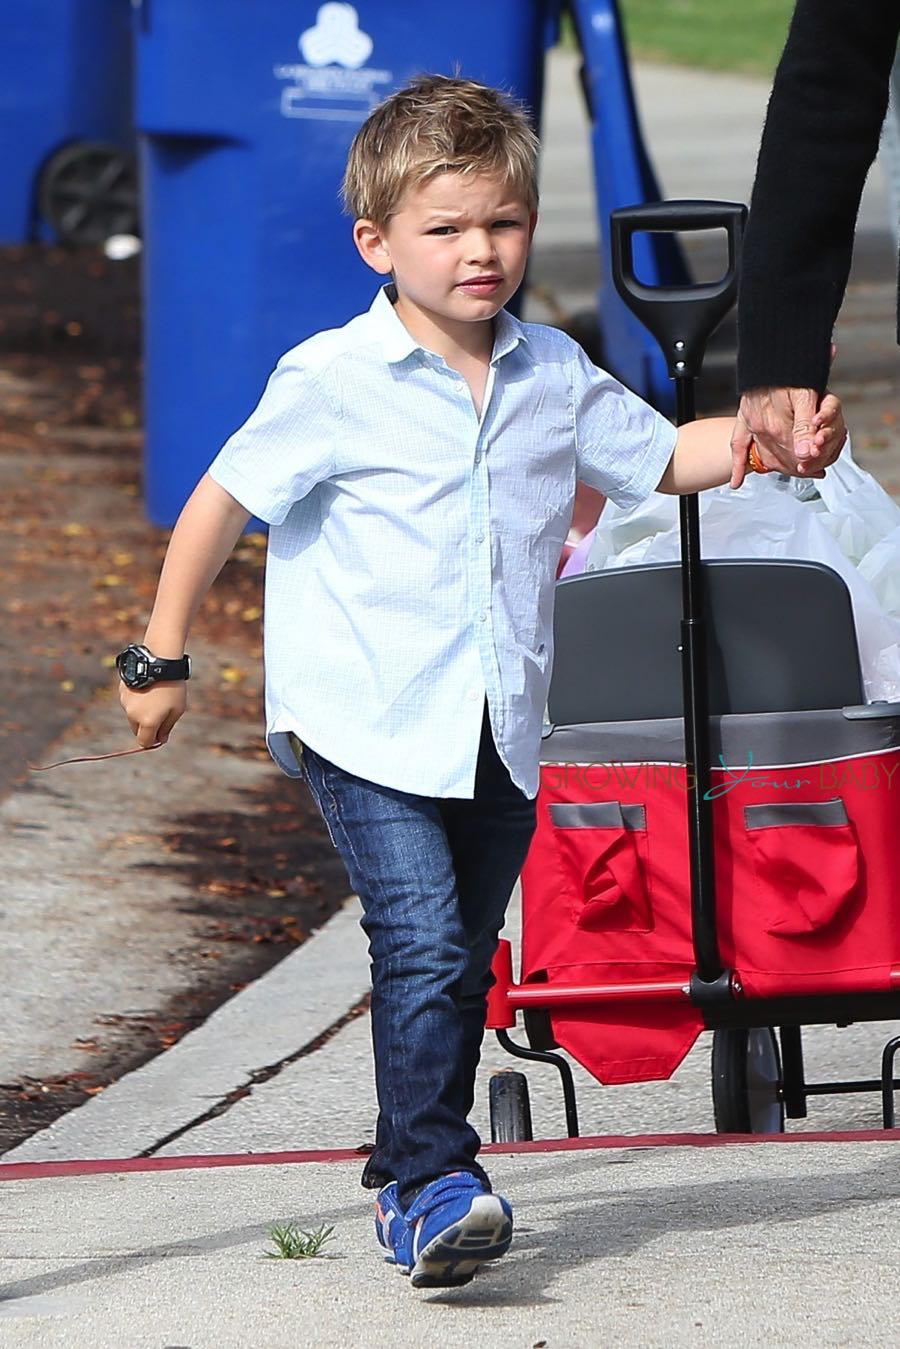 Sam Affleck At The Market Growing Your Baby